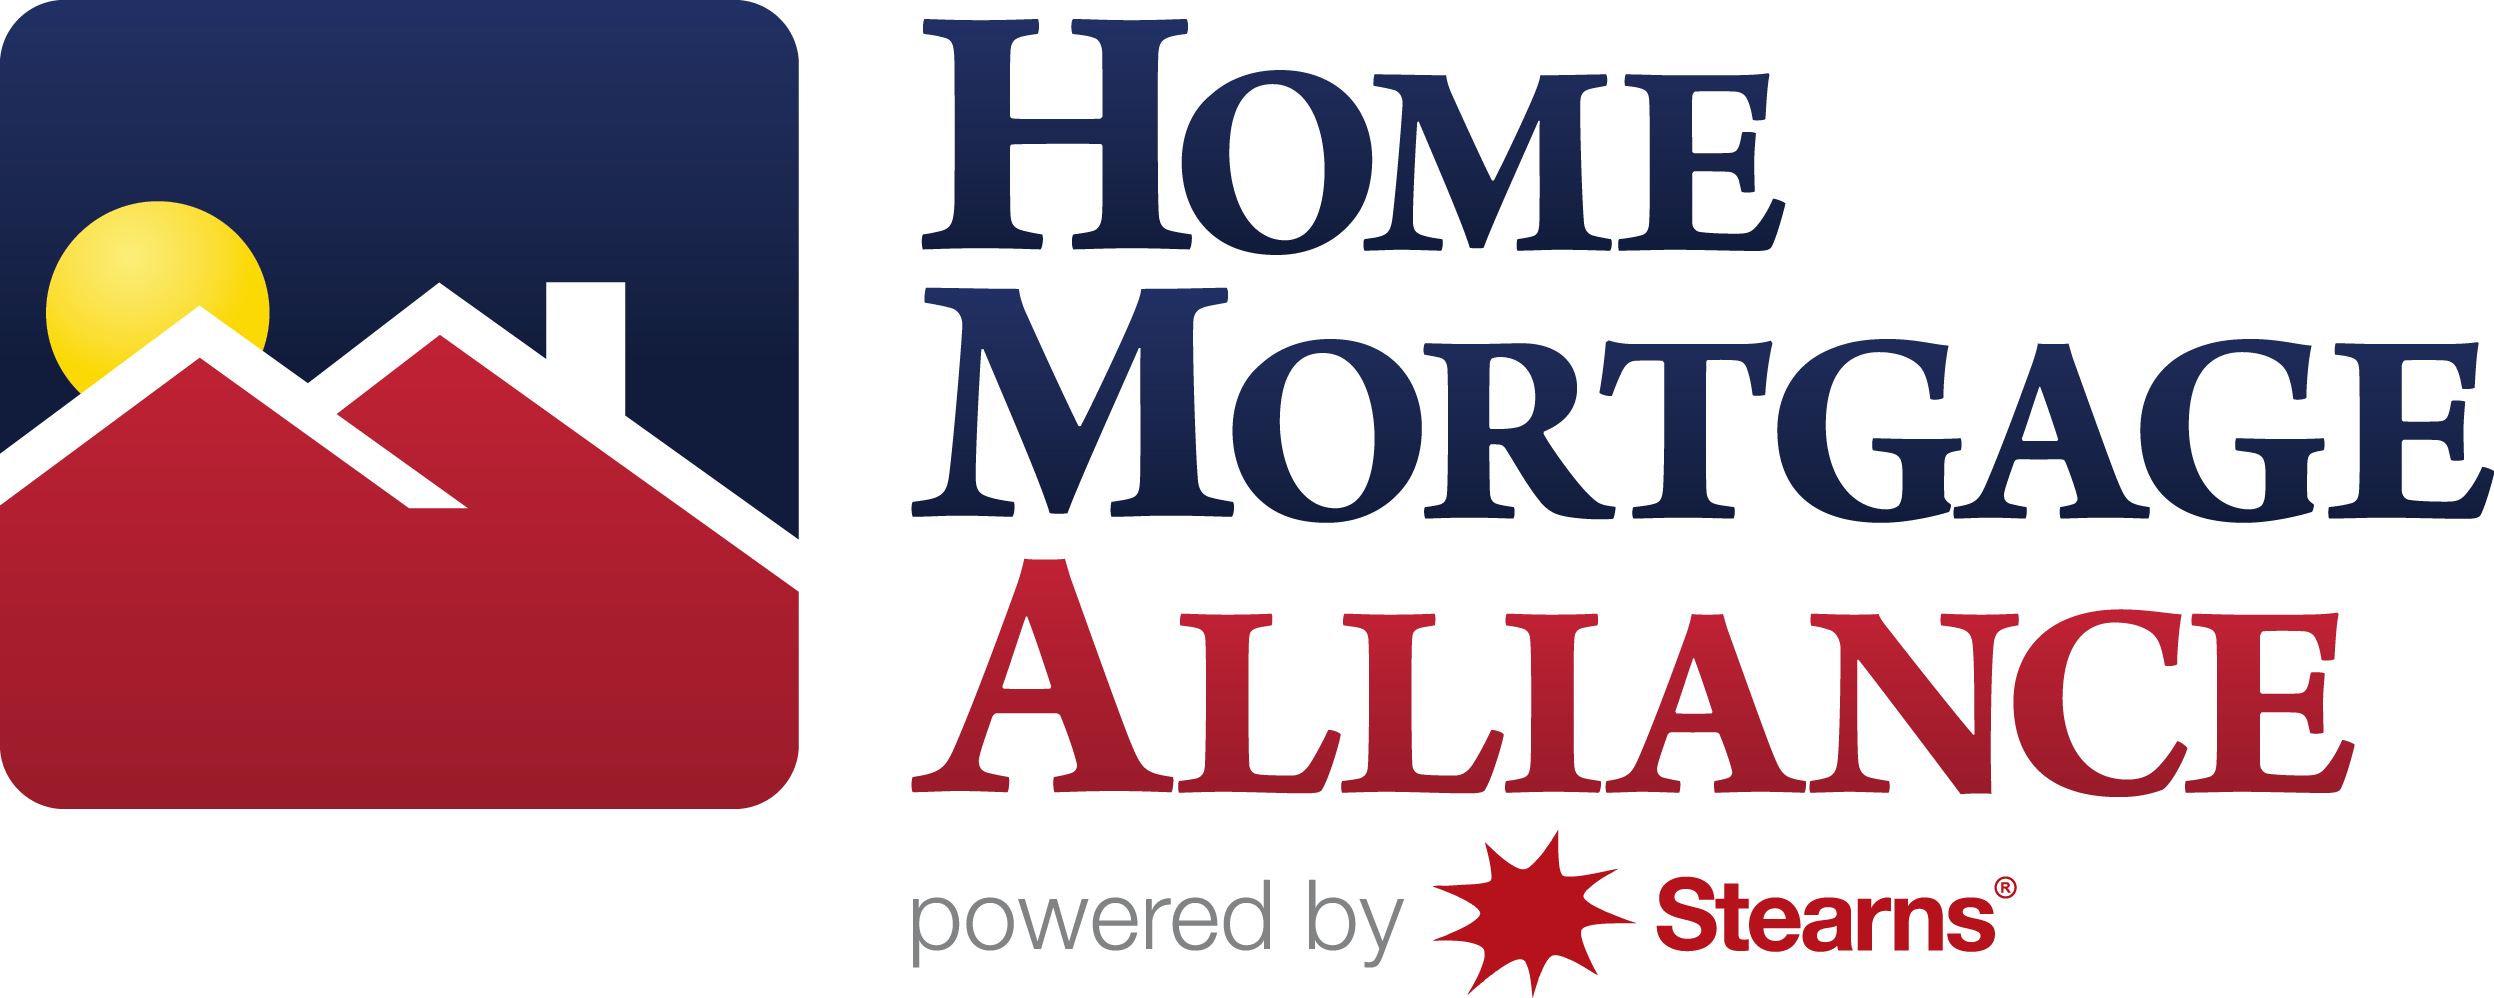 HMA-logo-full-color.png